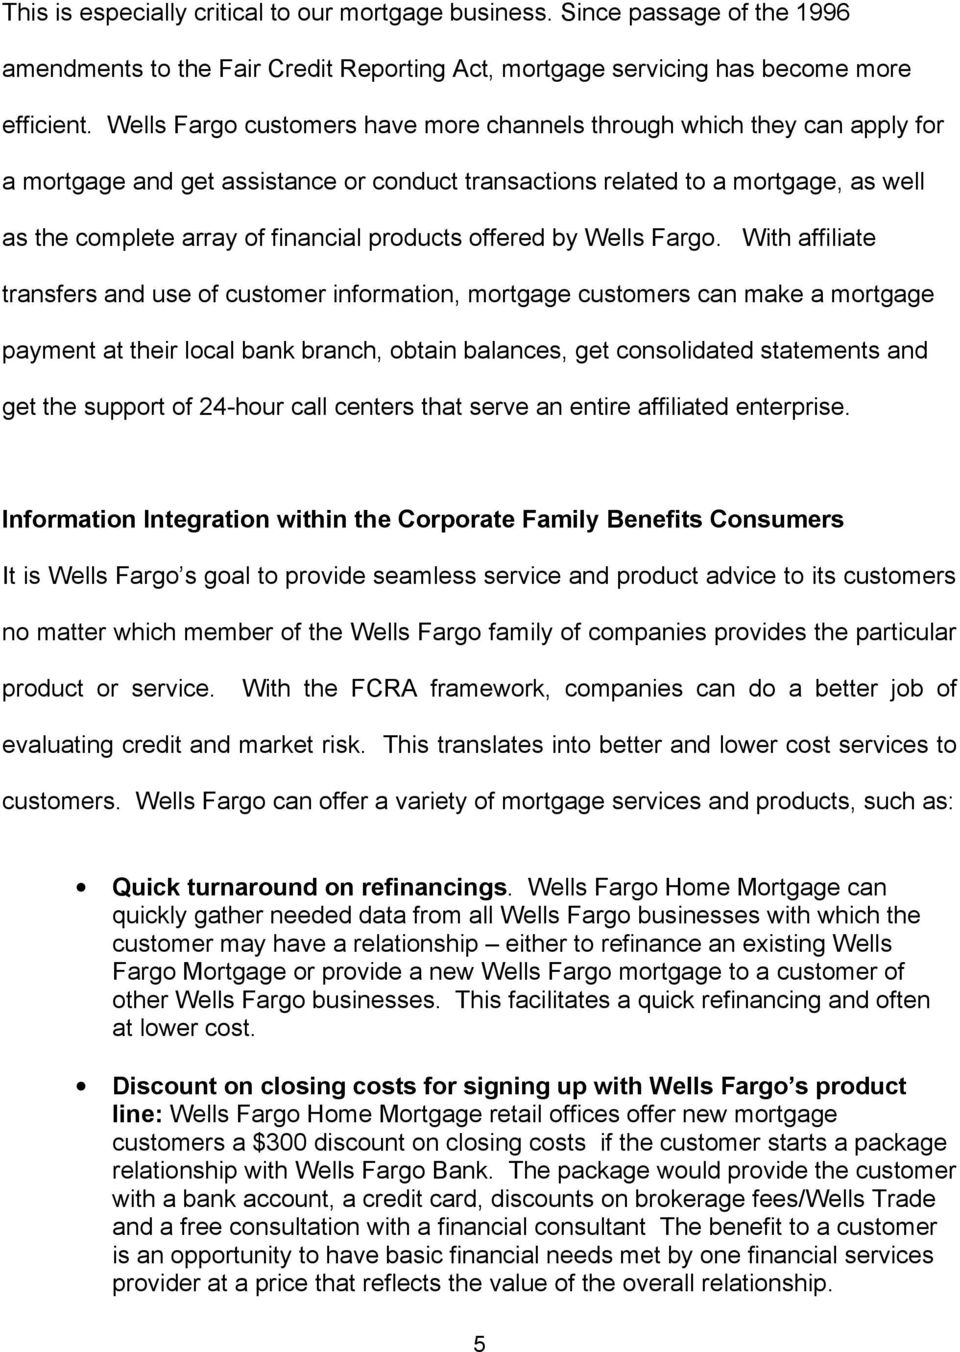 products offered by Wells Fargo.